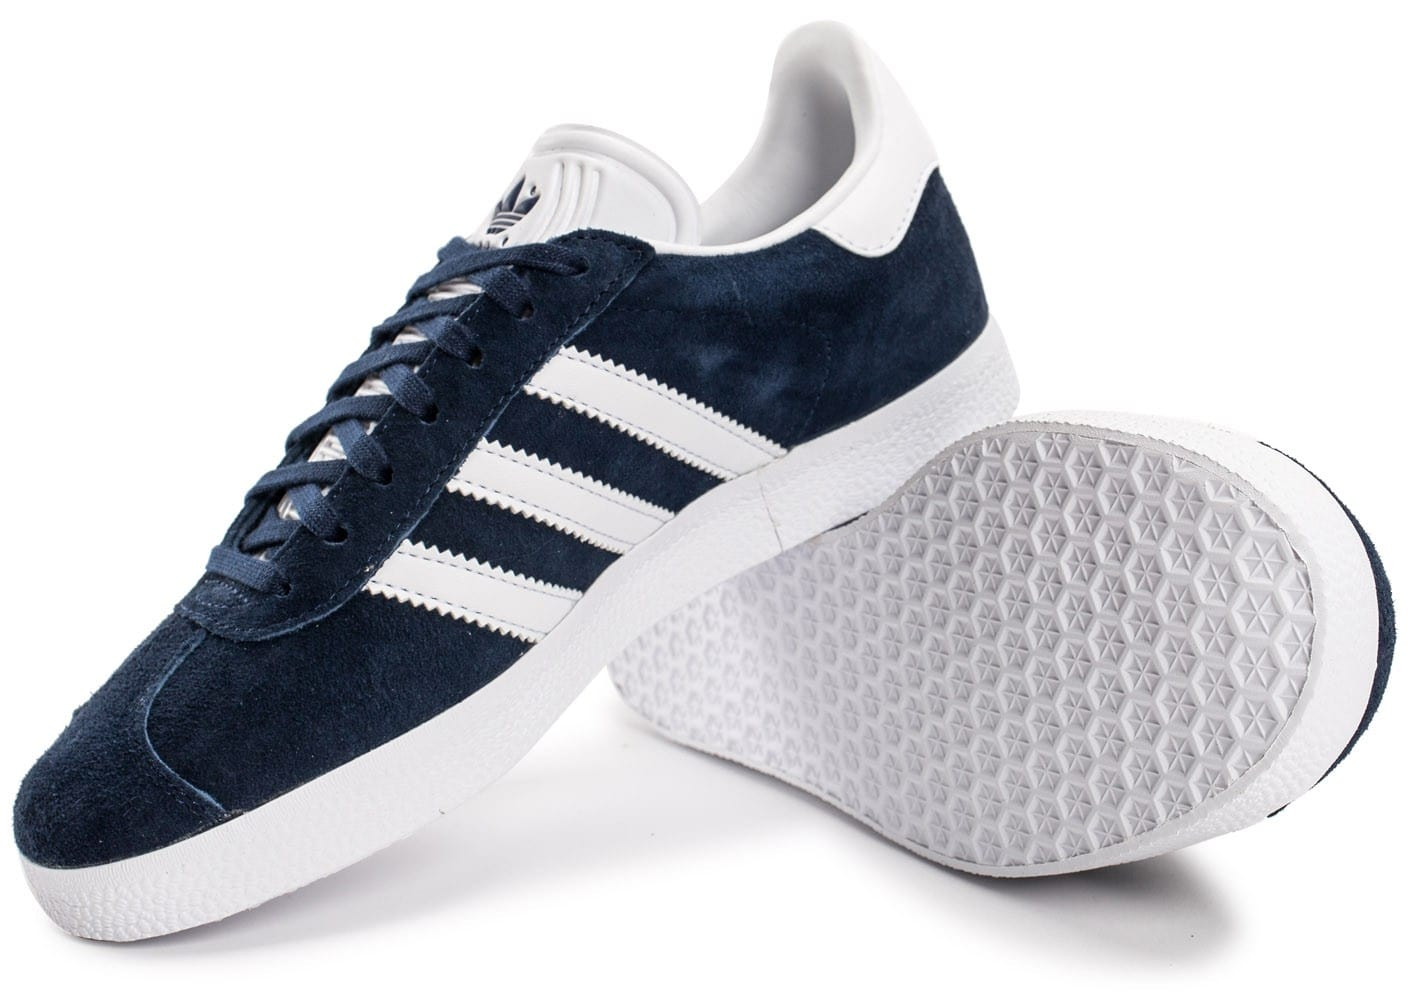 adidas gazelle w bleu marine chaussures adidas chausport. Black Bedroom Furniture Sets. Home Design Ideas